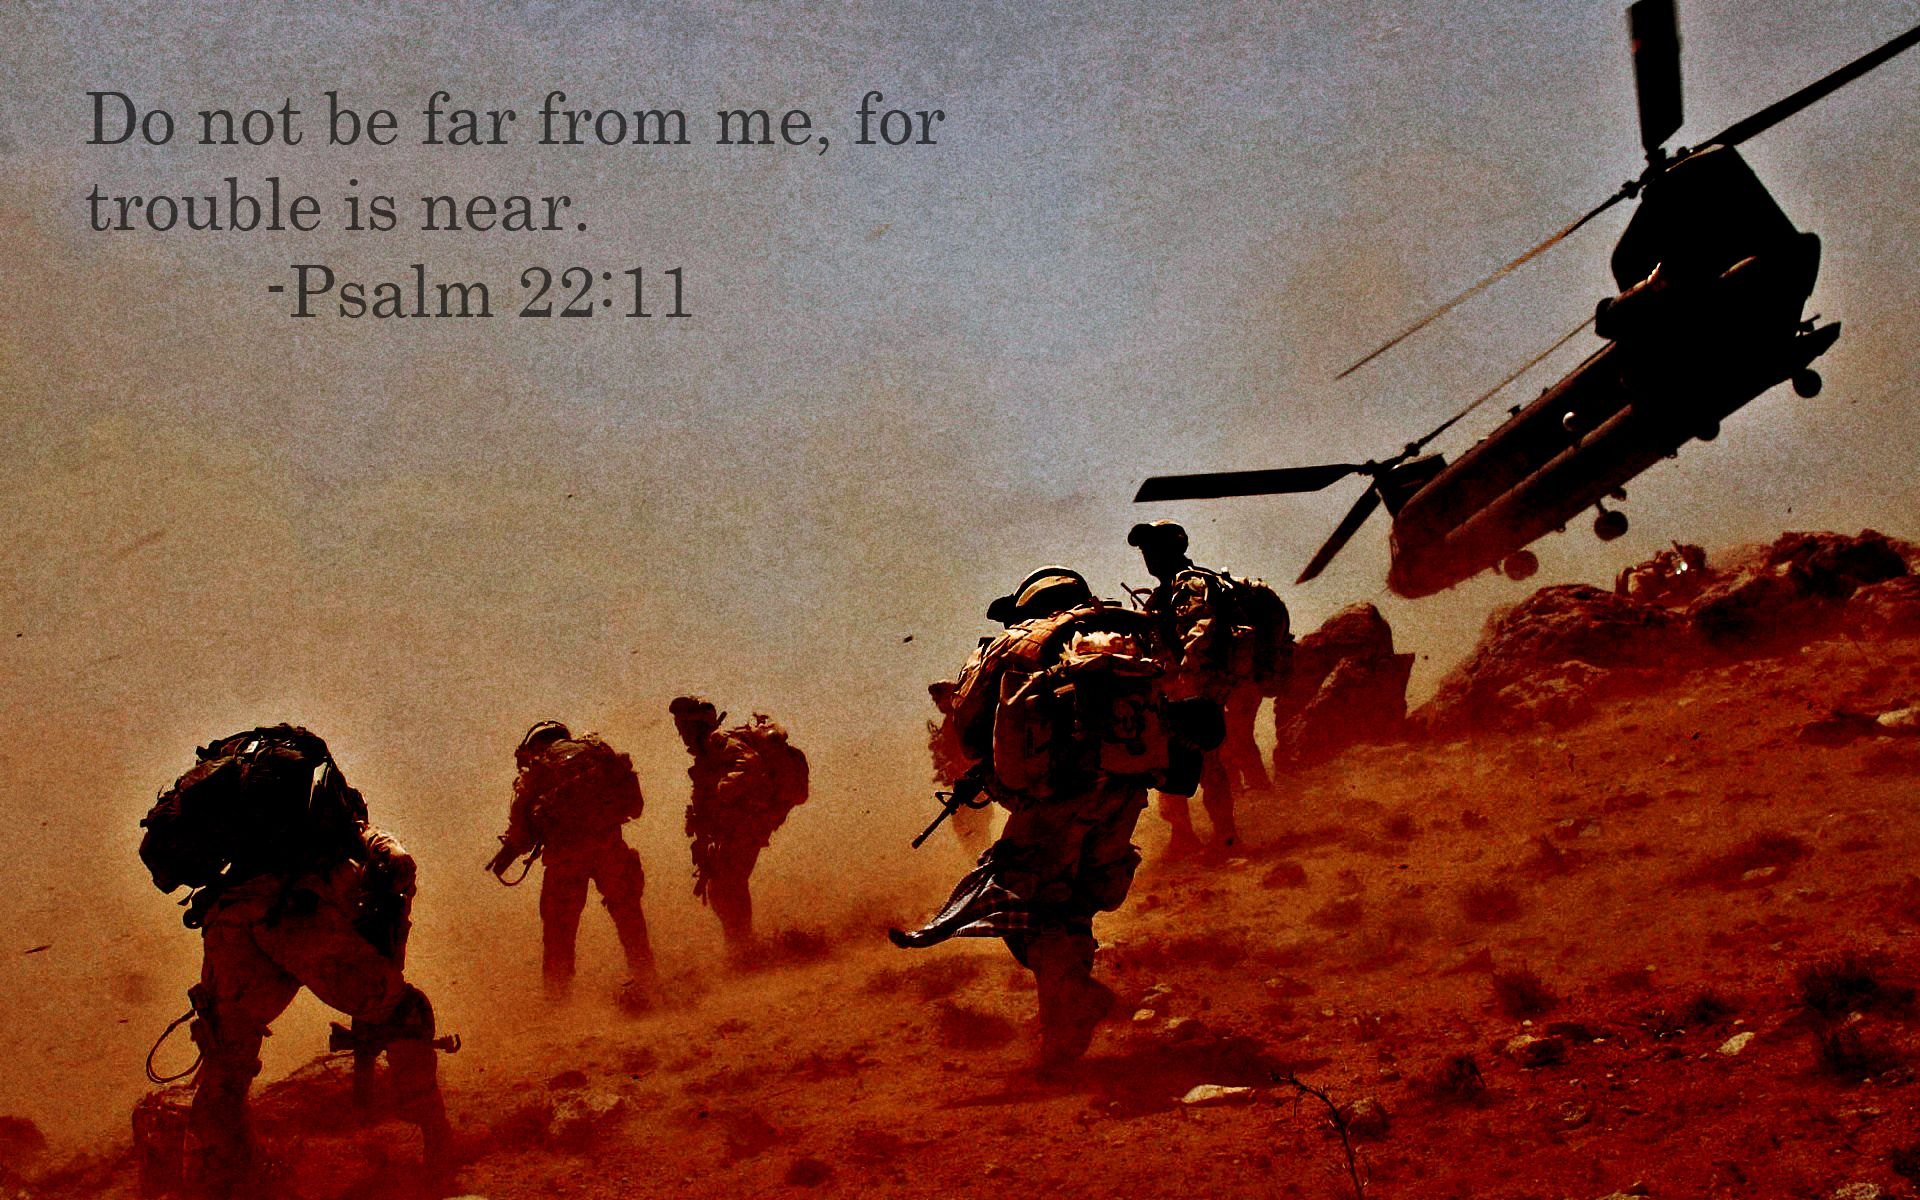 Soldier Wallpaper Background 31254 Background Images Background Images Wallpapers Wallpaper Backgrounds